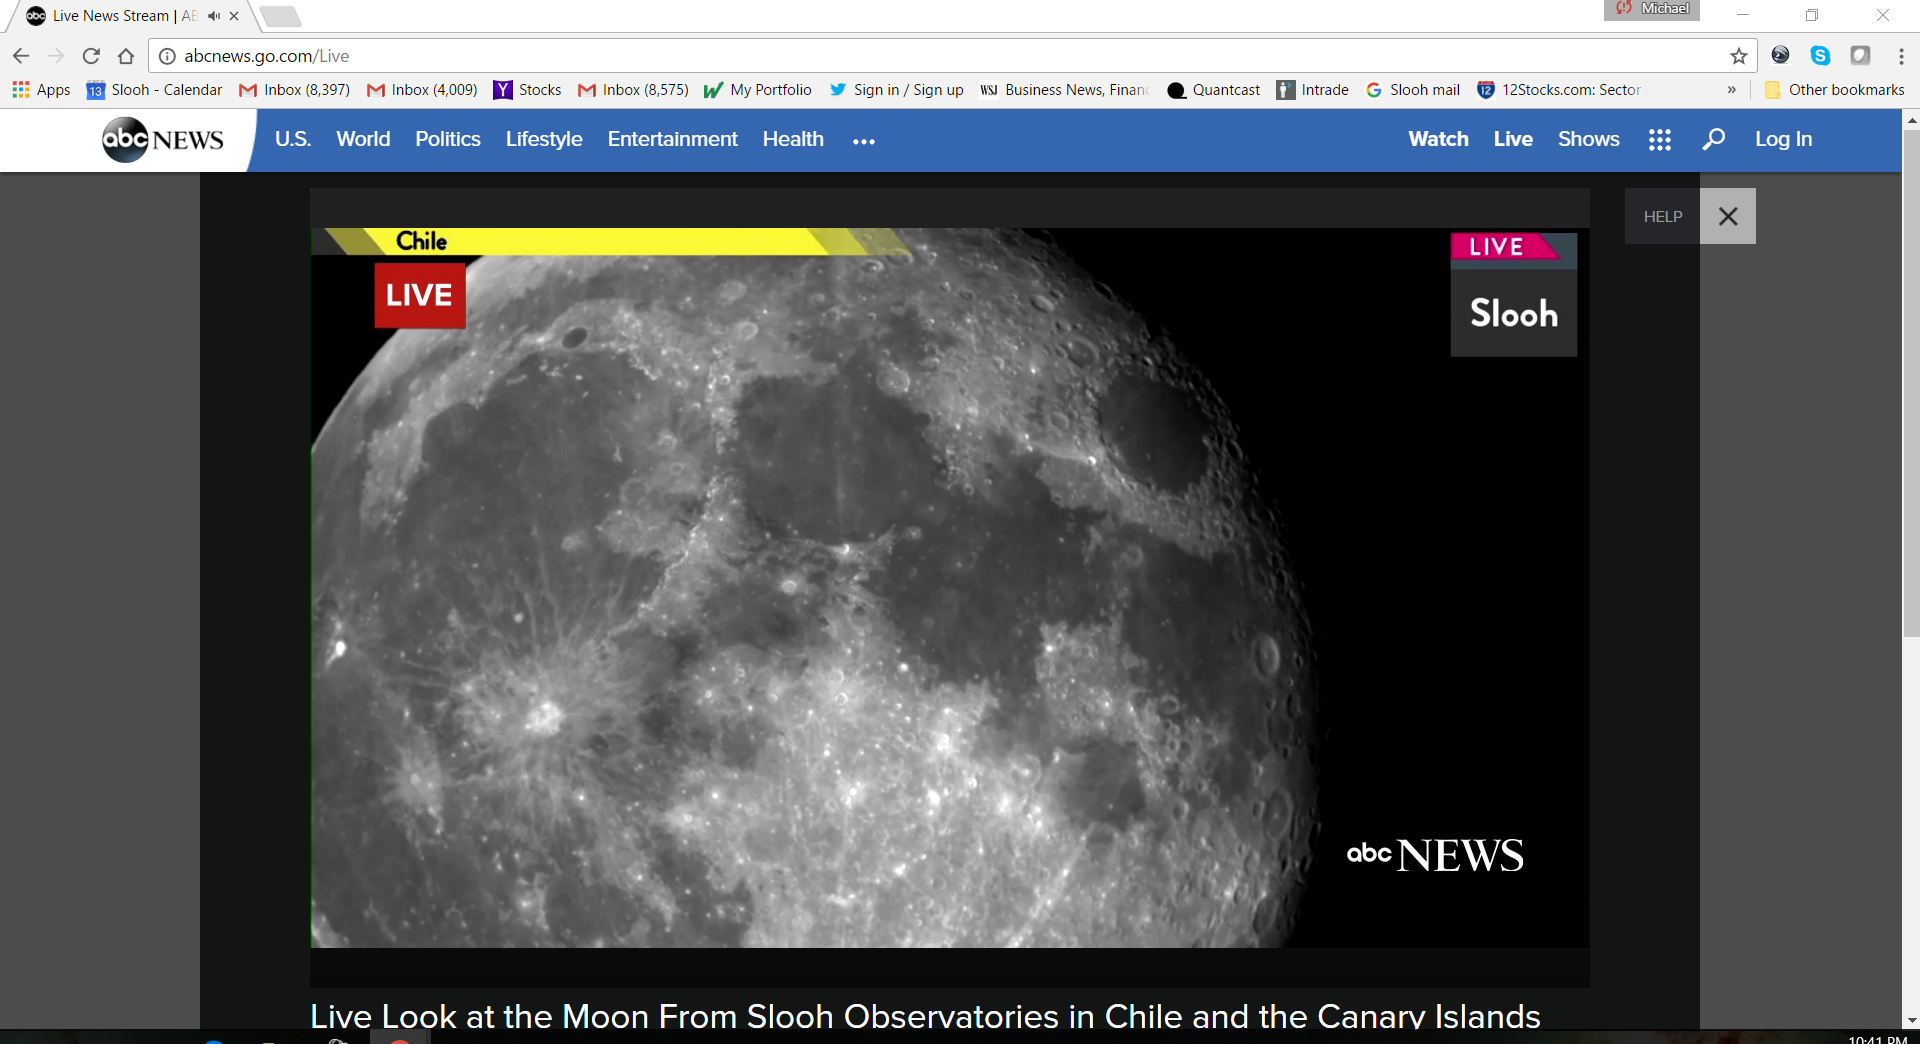 Slooh live feed of the moon for ABC News